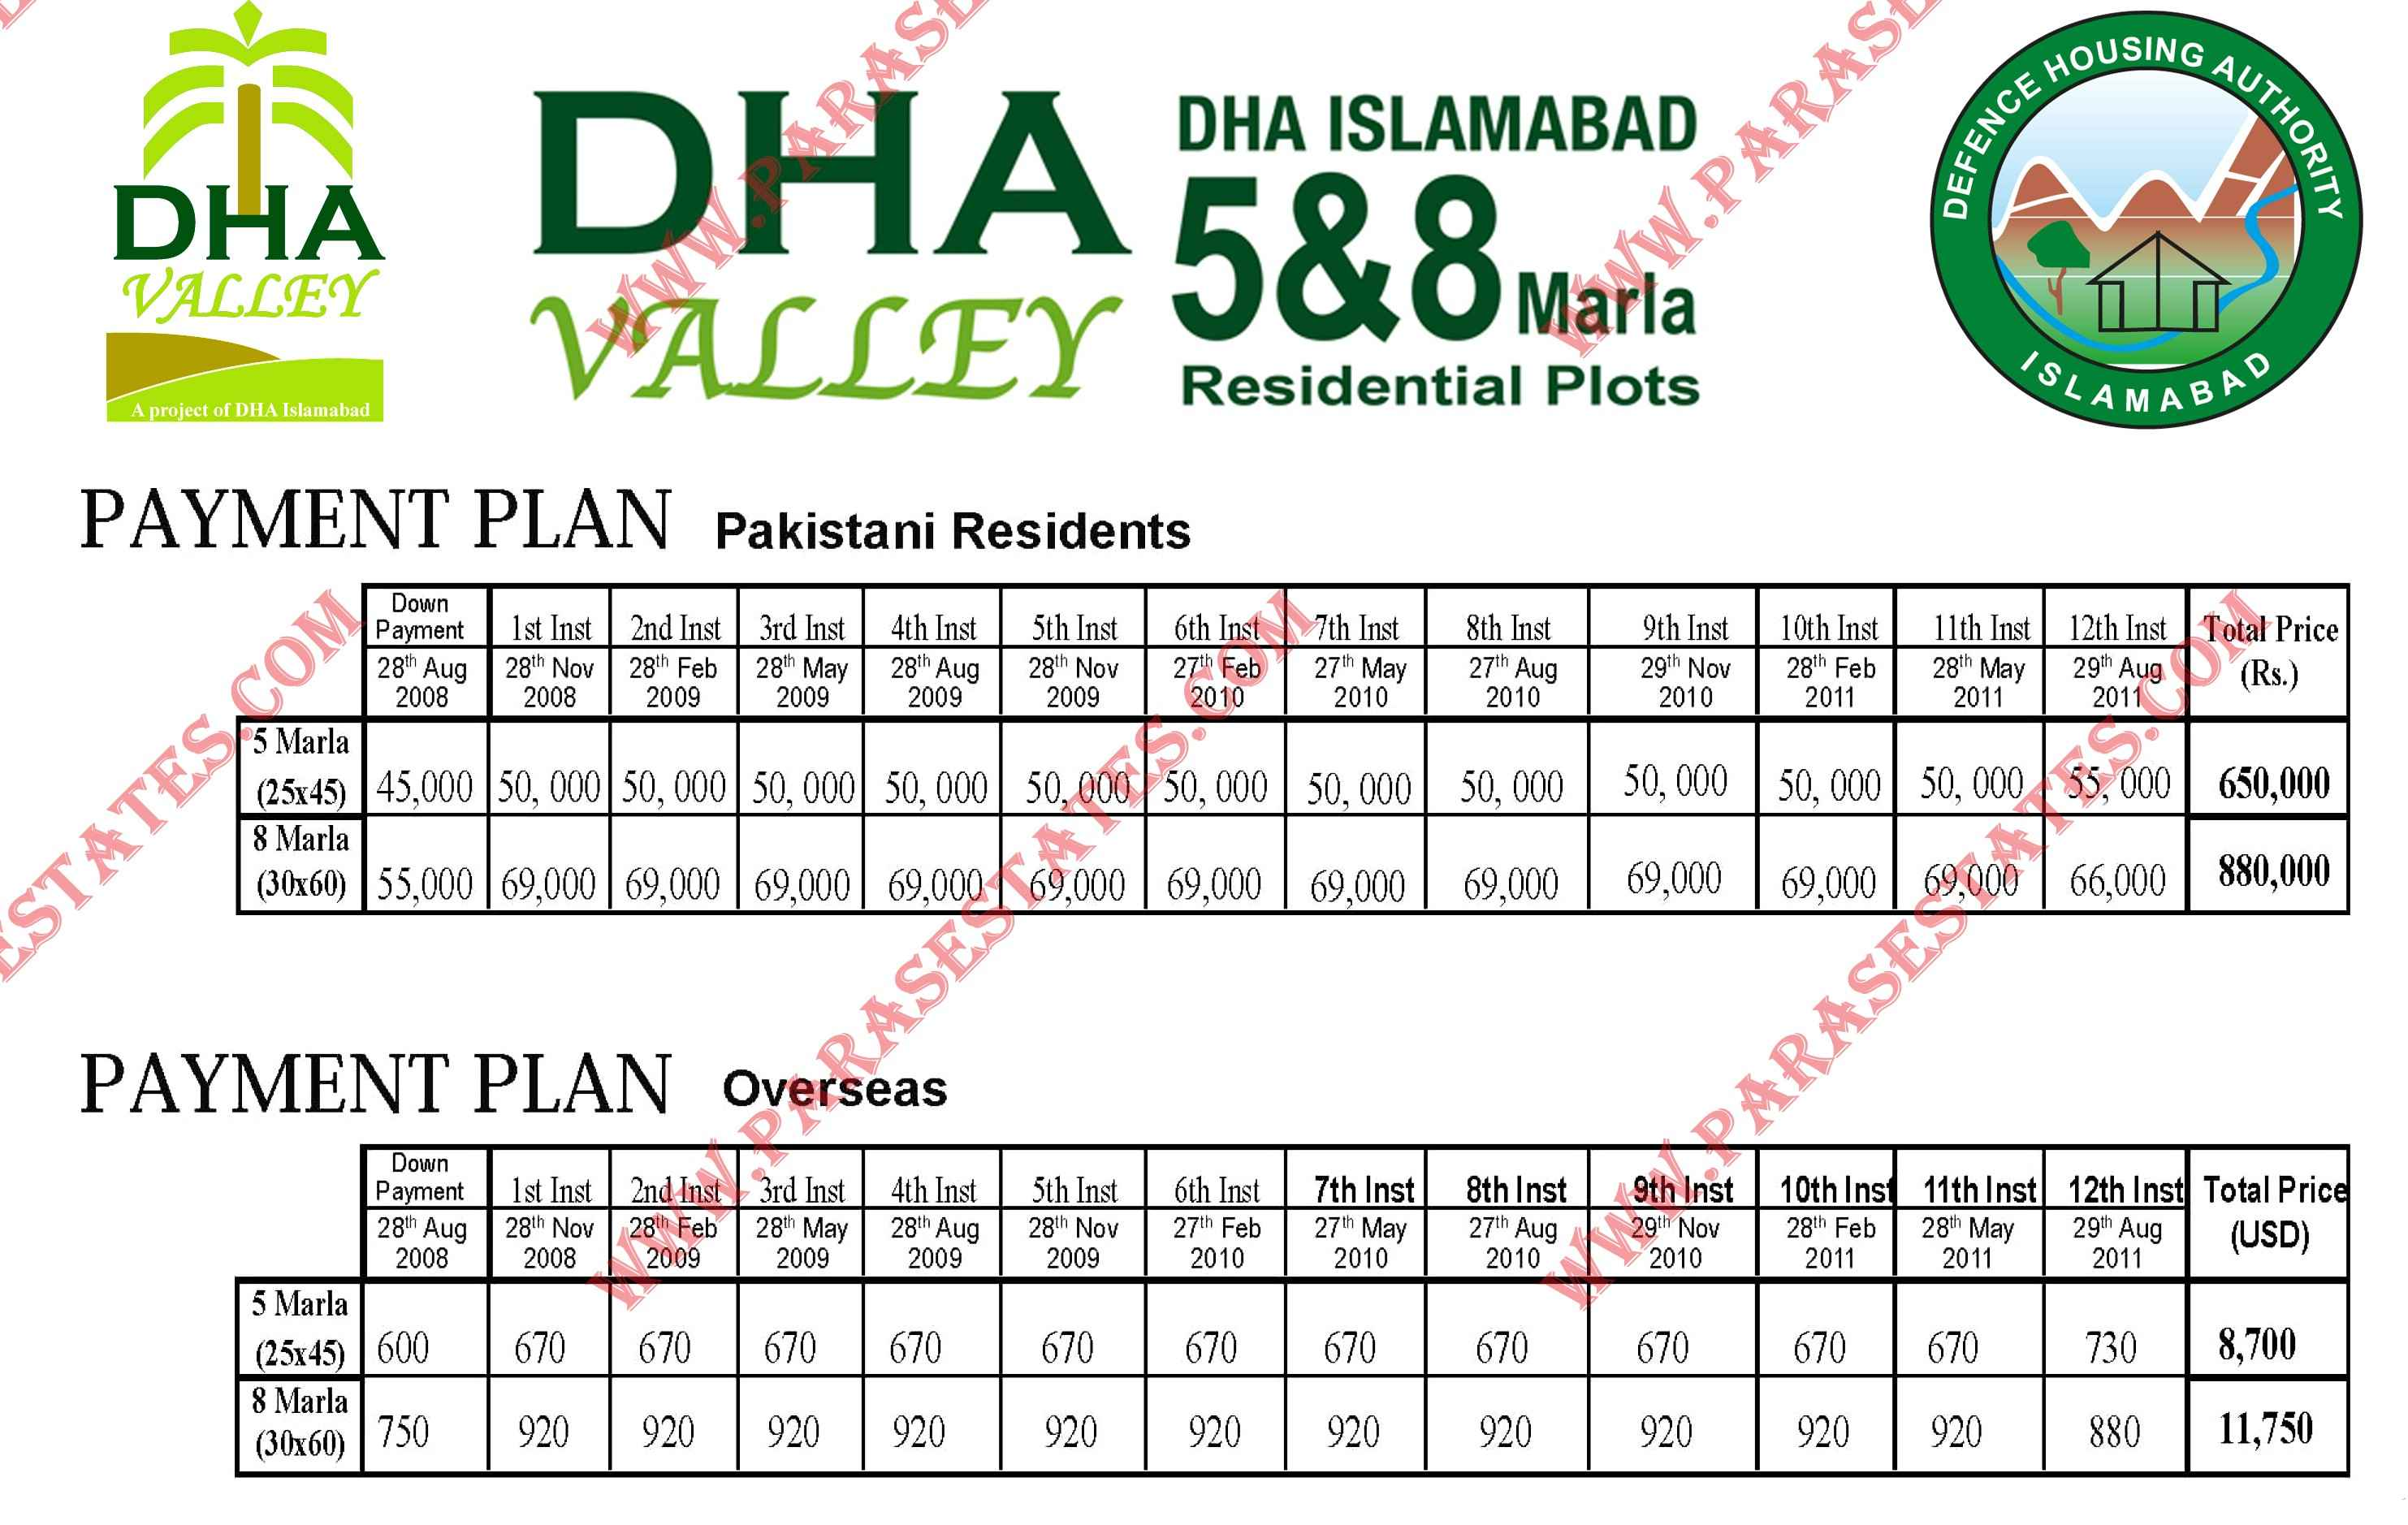 DHA Valley 5 and 8 Marla Payment Plan